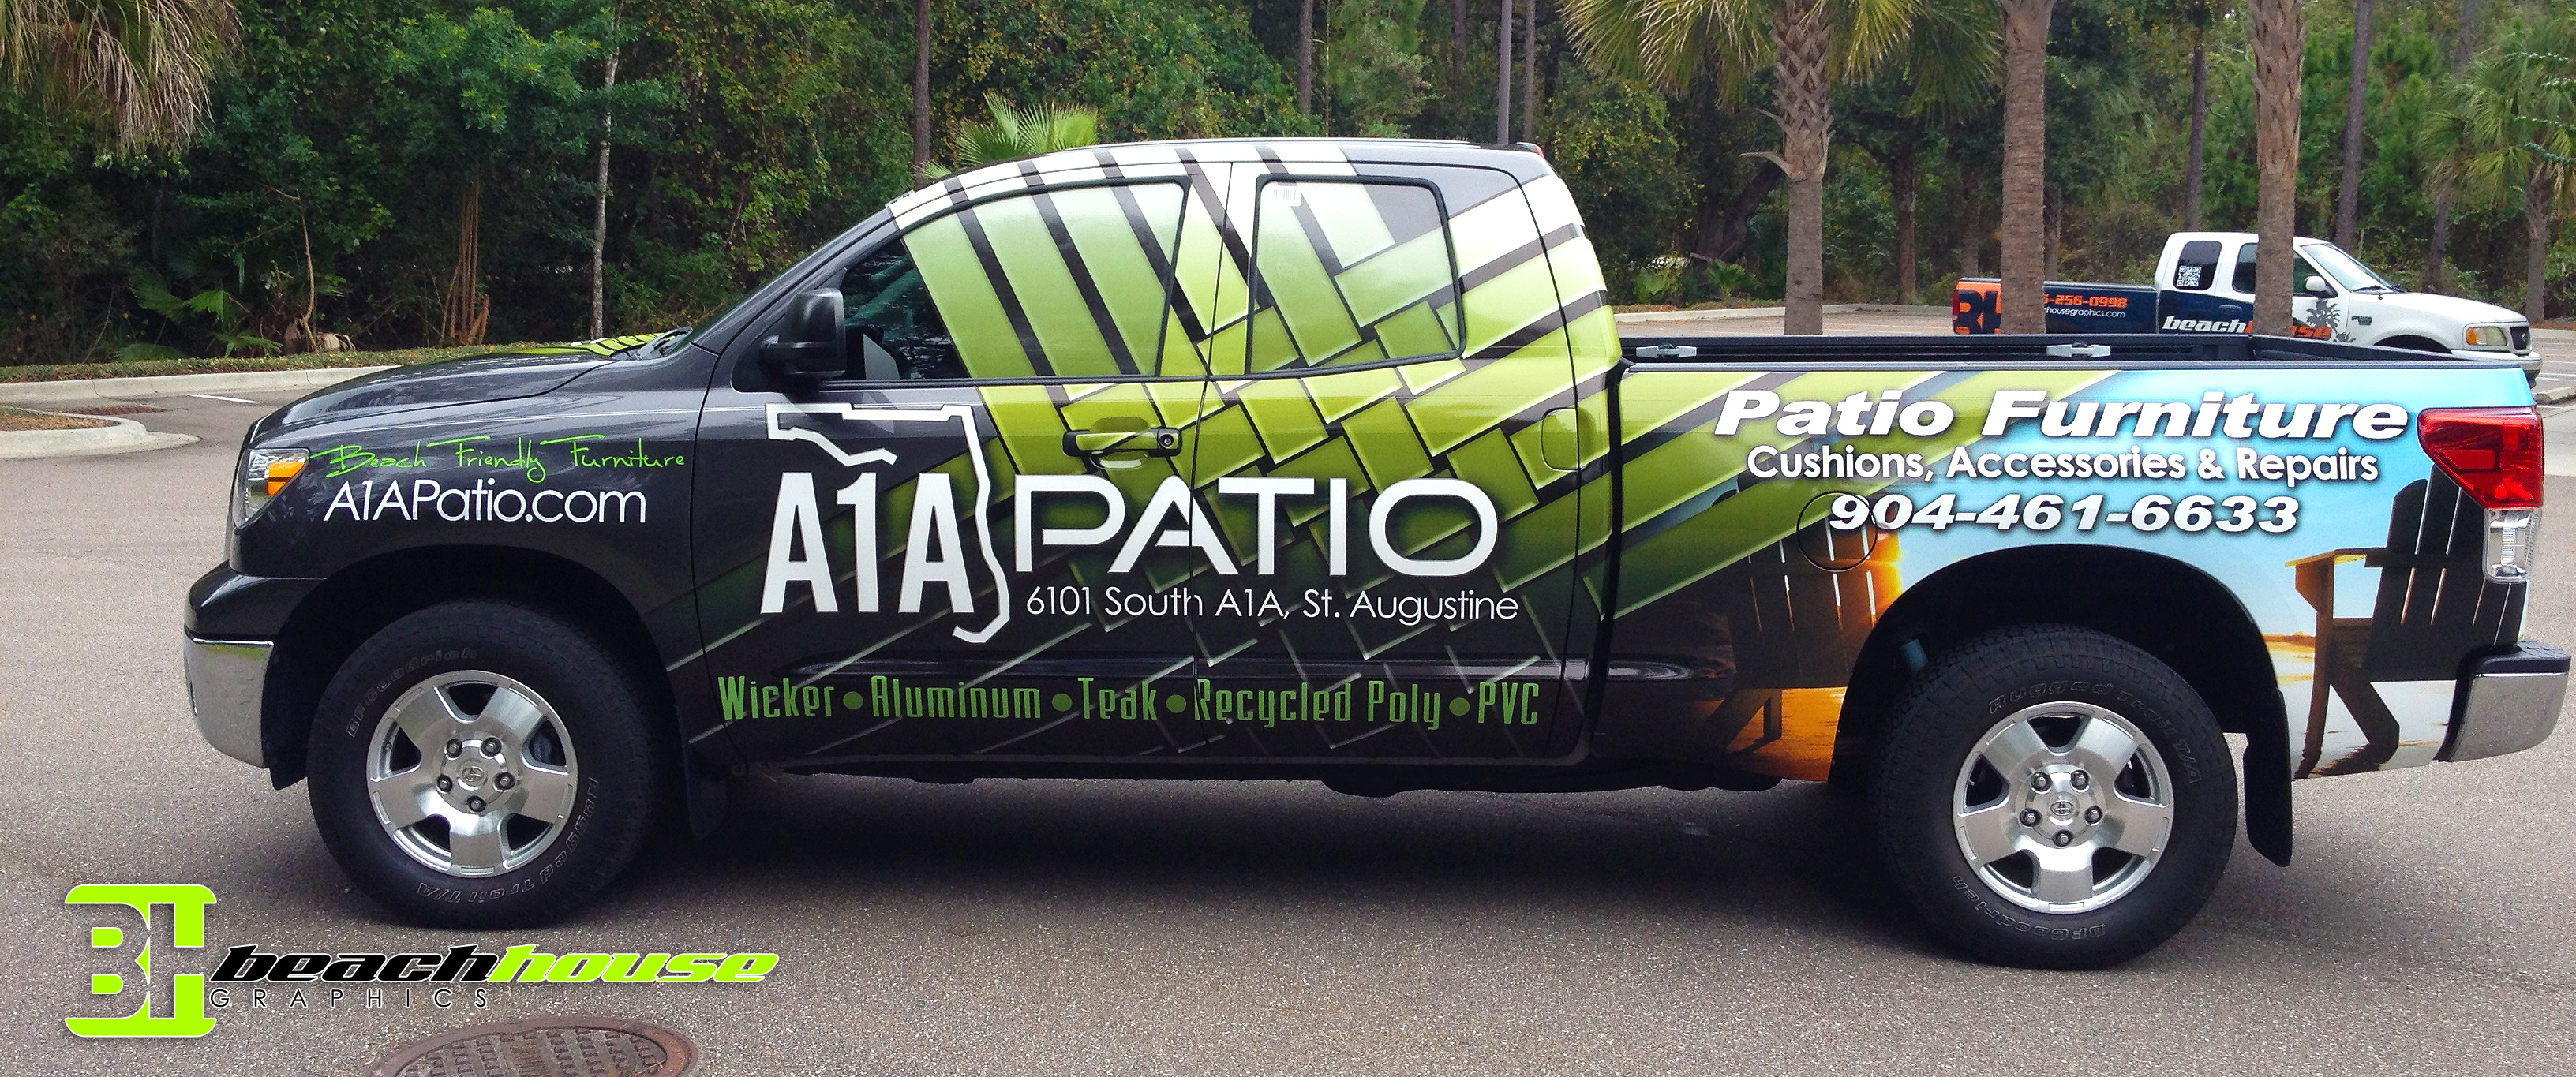 Vehicle Graphics Quote 386 256 0998 Page 3